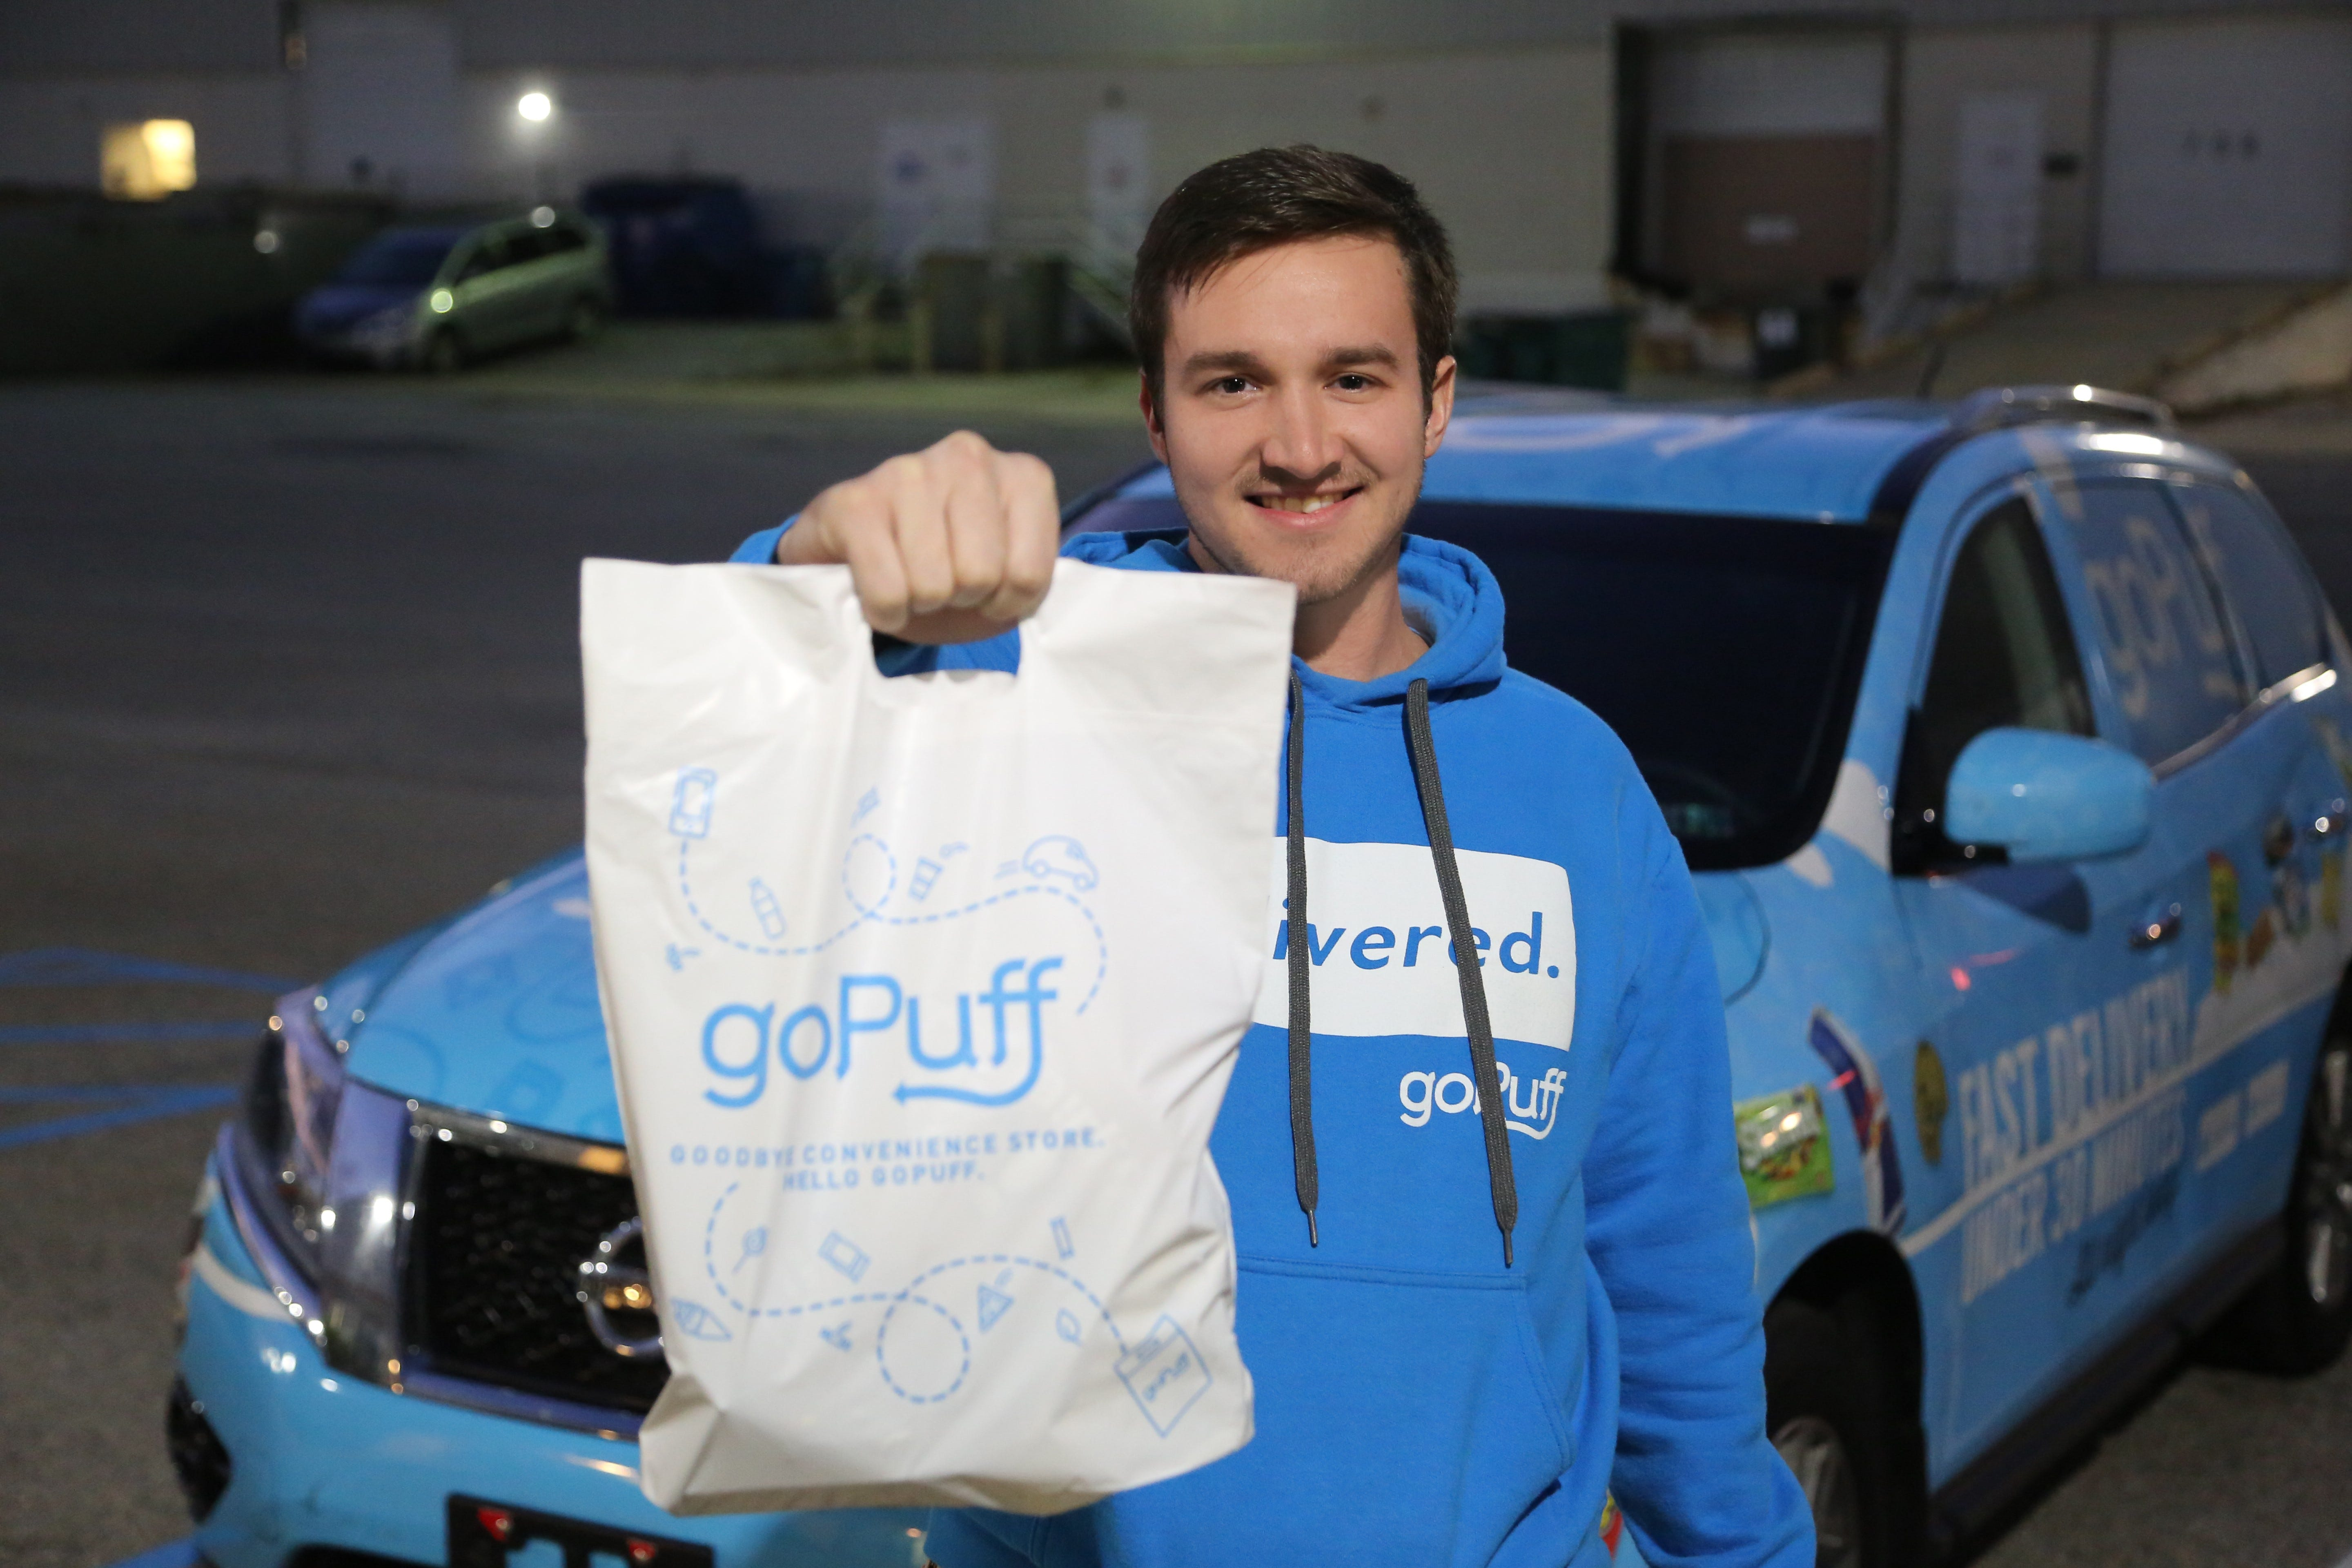 GOPUFF DELIVERY DRIVERS UPDATE